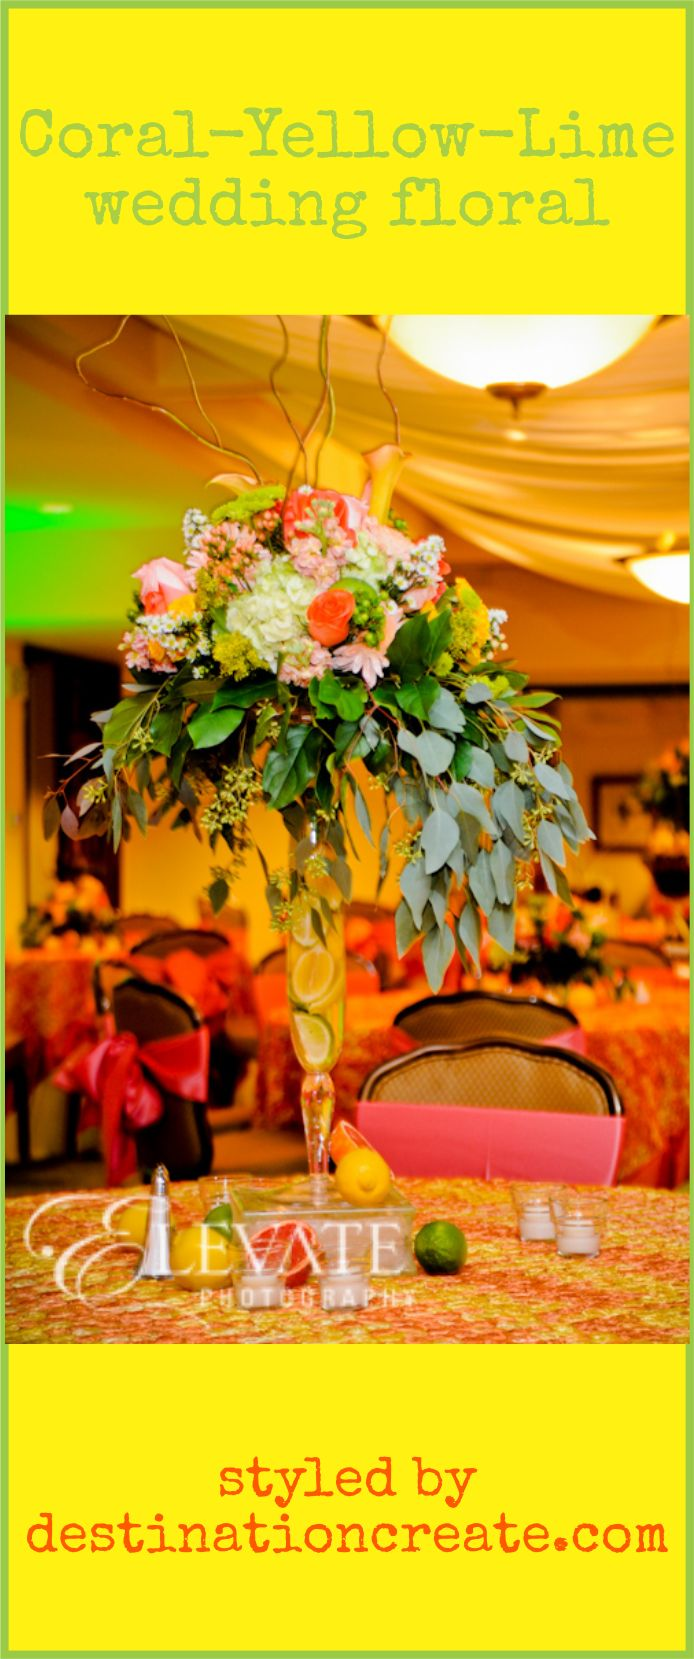 66 best ldscultural hall weddings images on pinterest wedding 66 best ldscultural hall weddings images on pinterest wedding reception ideas wedding decor and reception ideas junglespirit Images